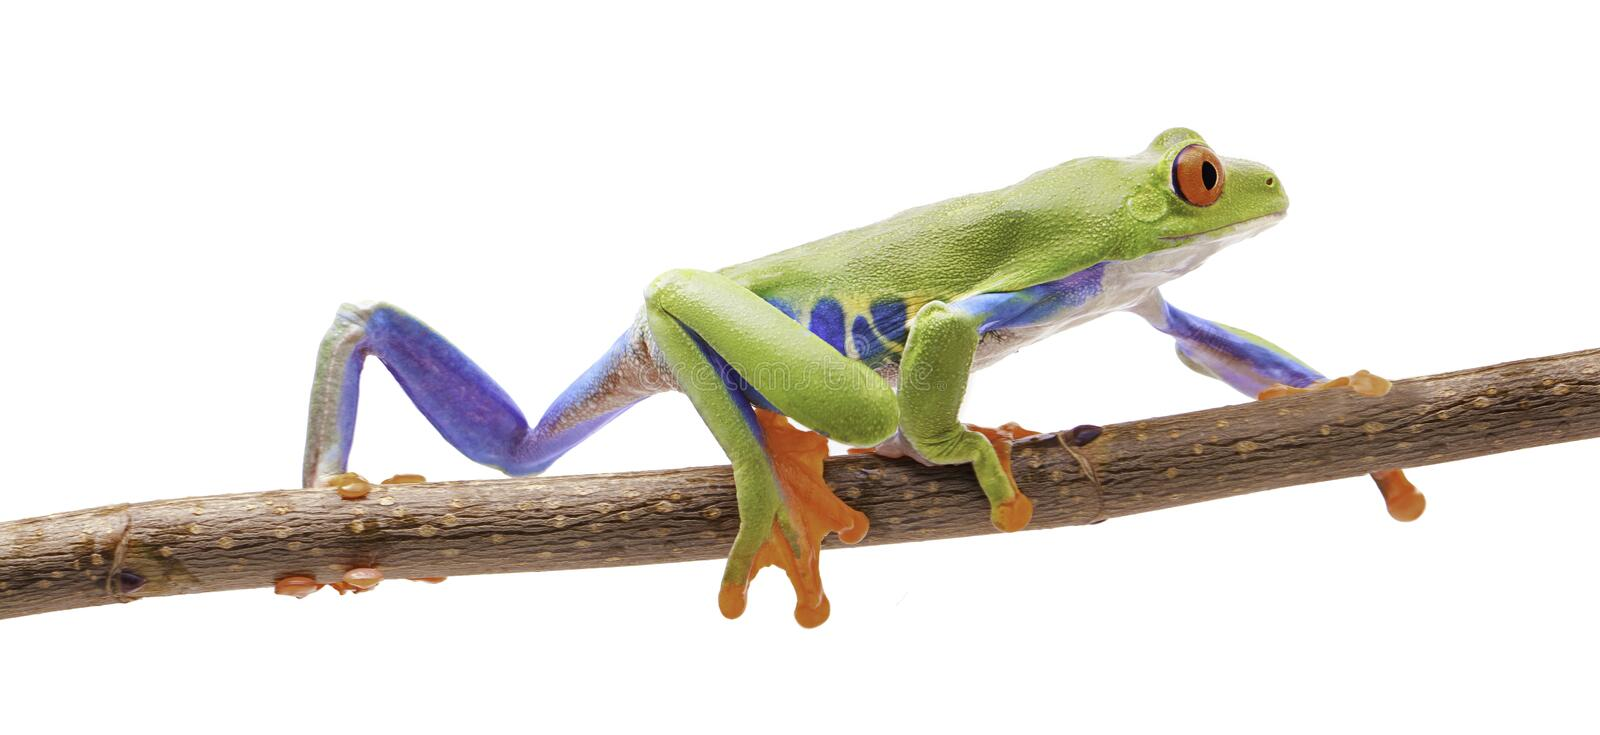 Red eyed tree frog crawling on a twig. Isolated on white. A beautiful exotic animal from the tropical rain forest of Costa Ric stock images